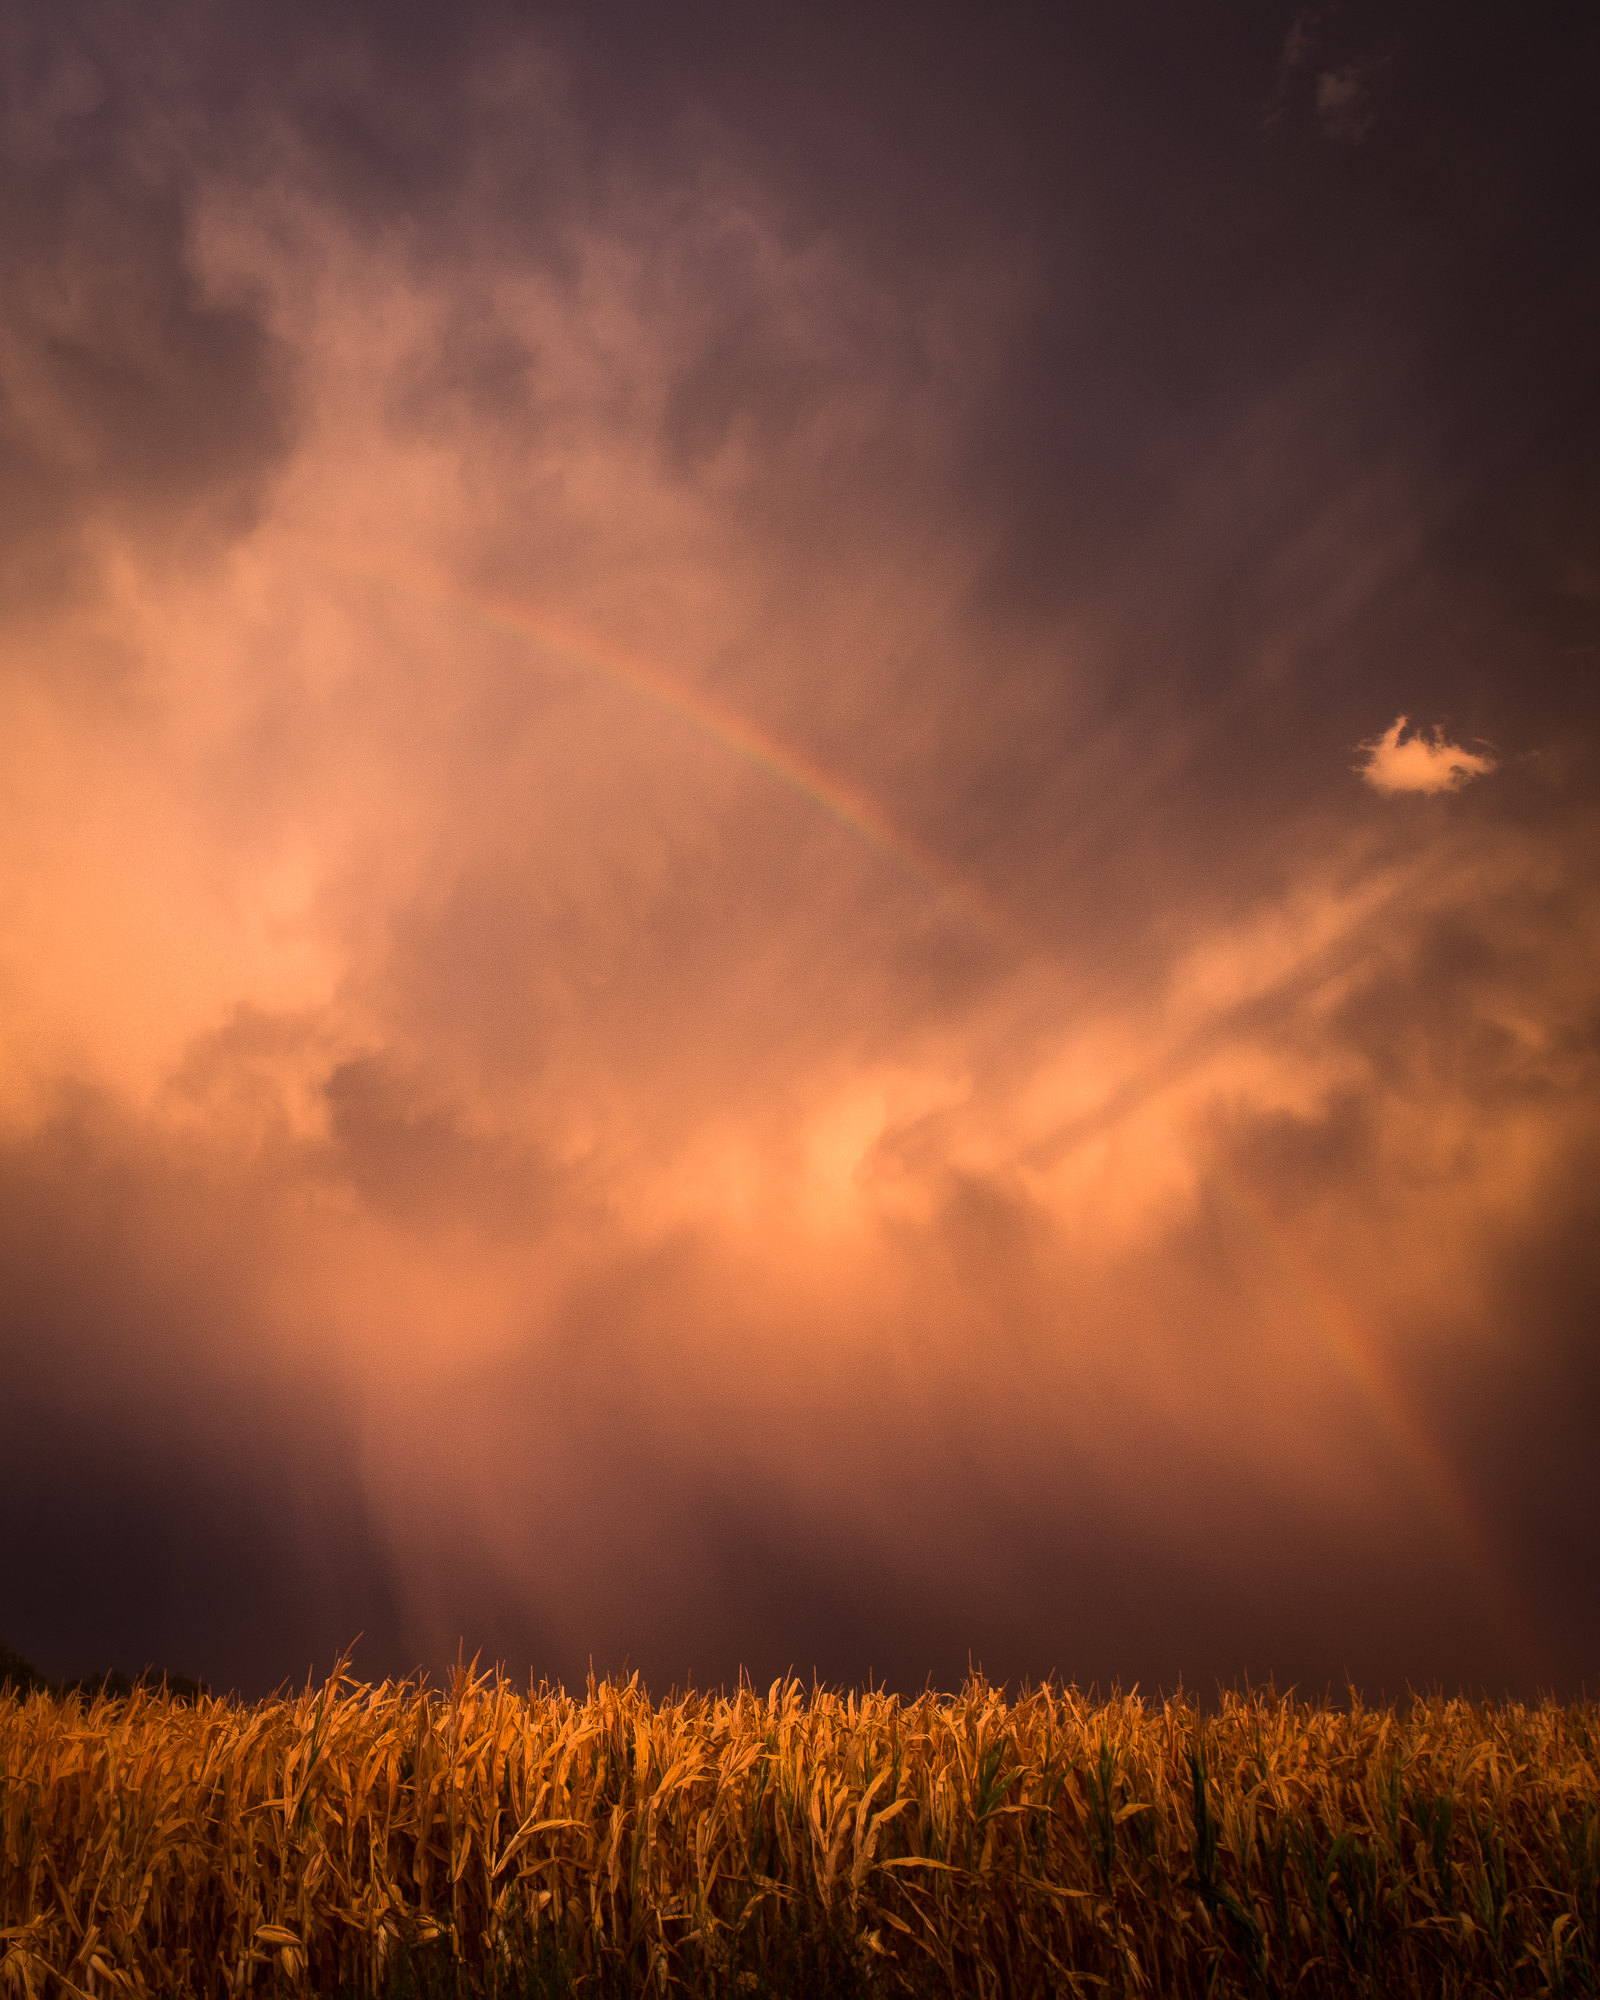 A rainbow appears after a storm passes in eastern Kansas.